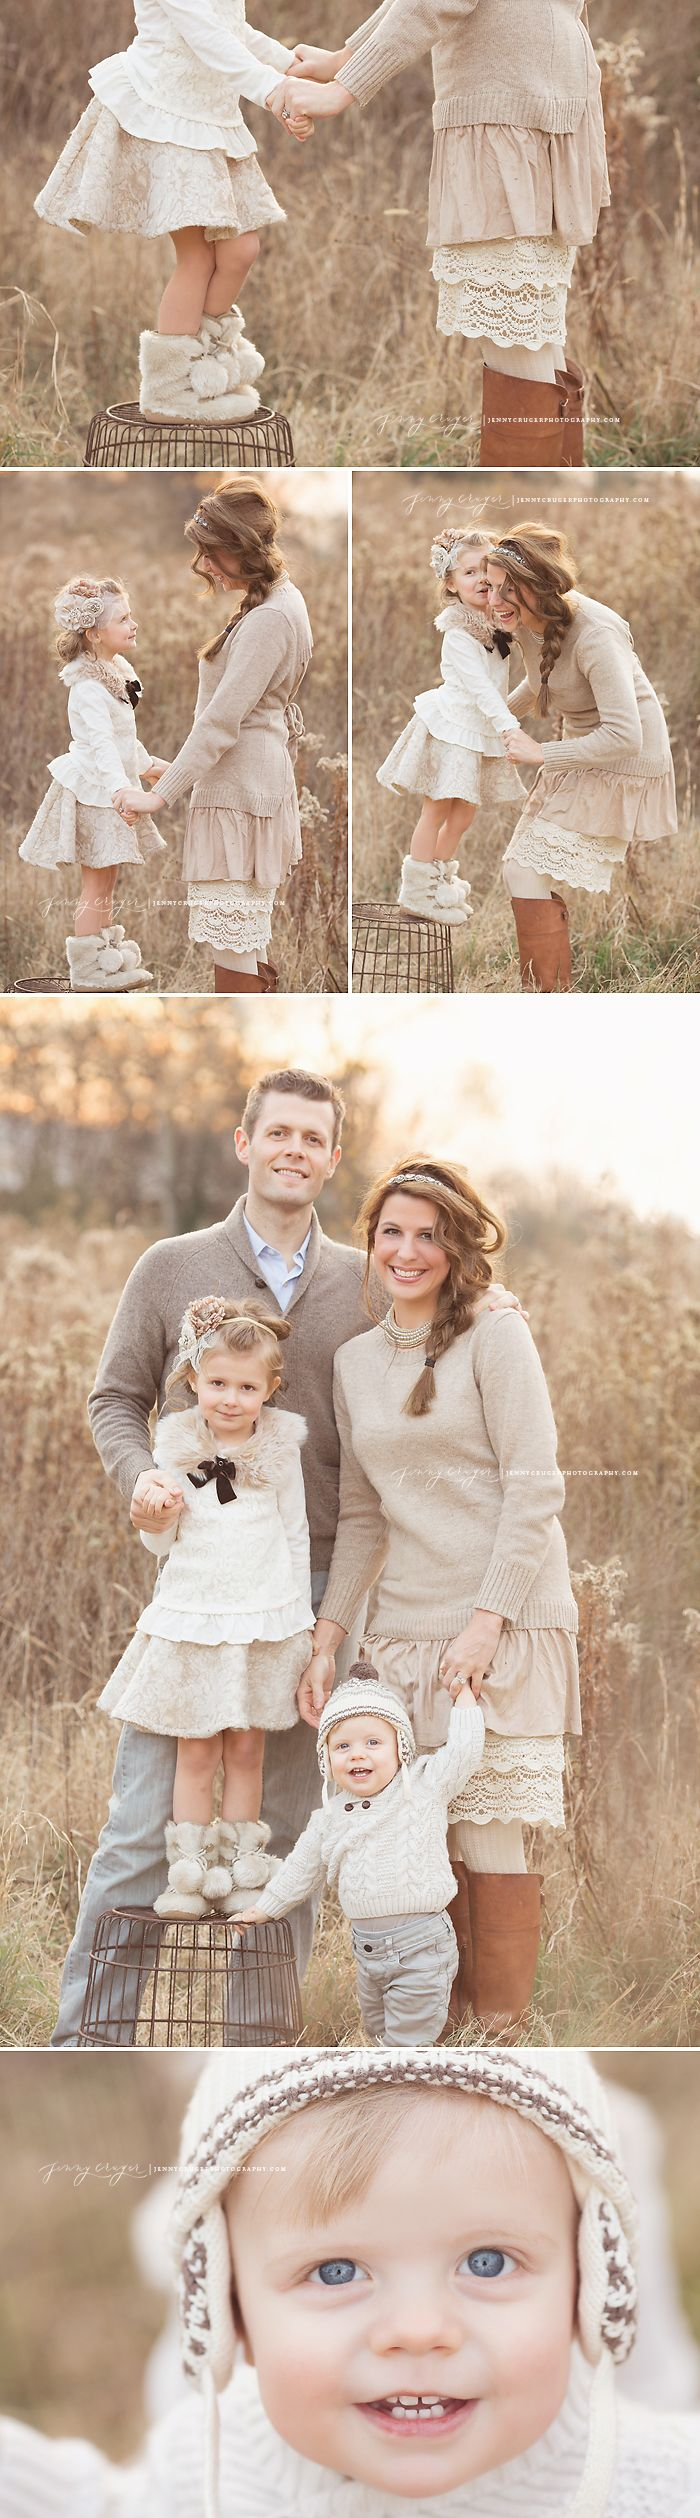 naturist family talent contest Beautiful family session by Jennie Cruger Photography! Love the family's  outfits!